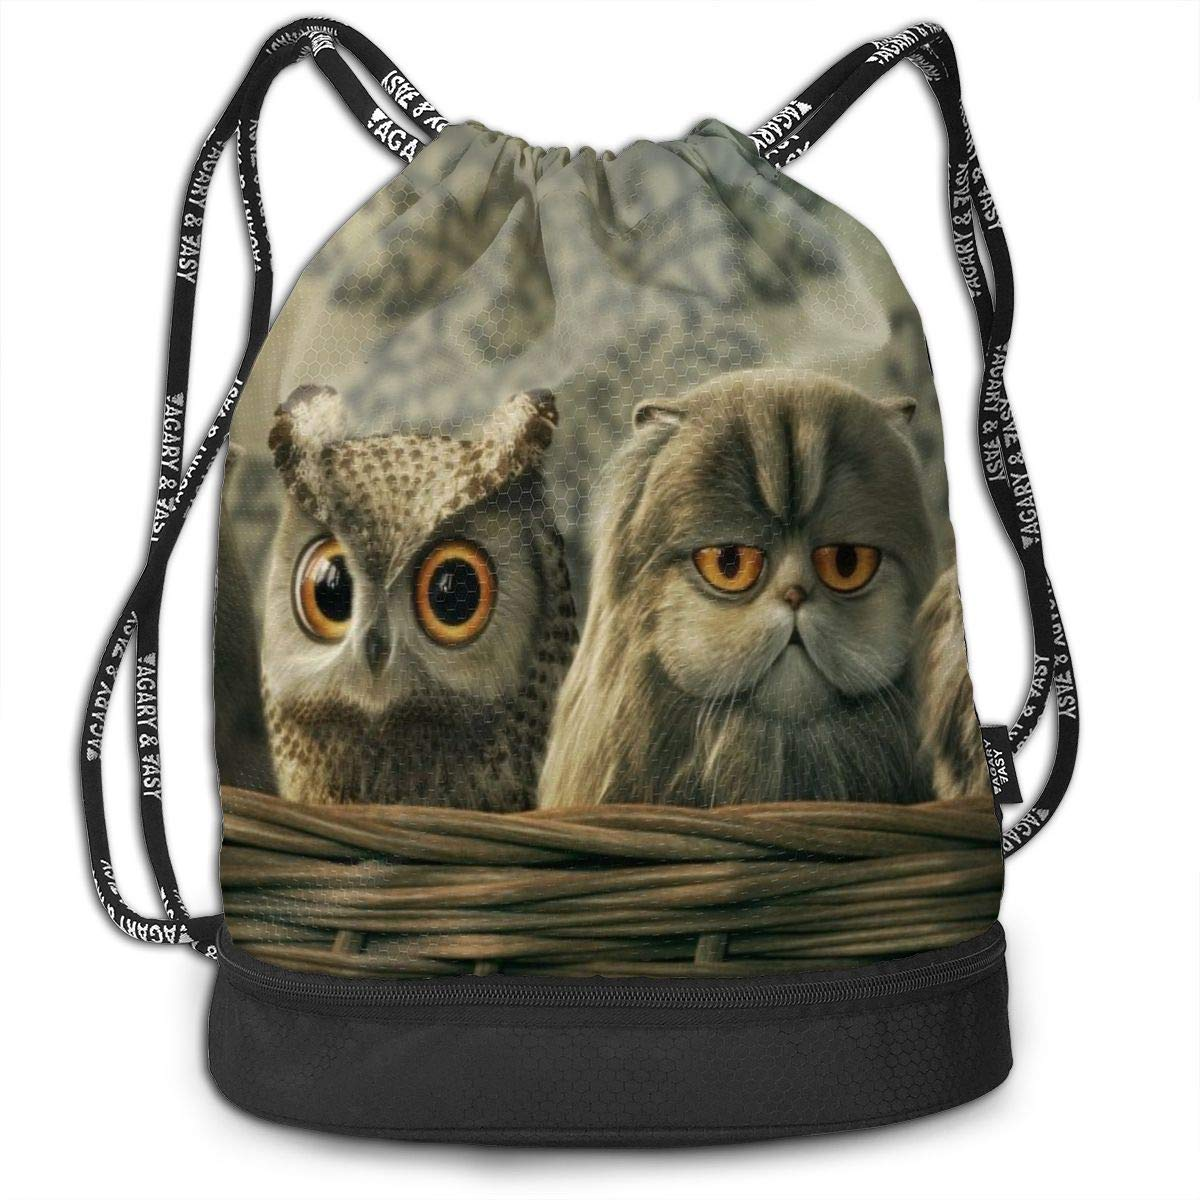 Fashion Outdoor Zipper Drawstring Bag Cat Owl1 Printed Bundle Backpack for Men Women Unisex Multi-Function Backpack